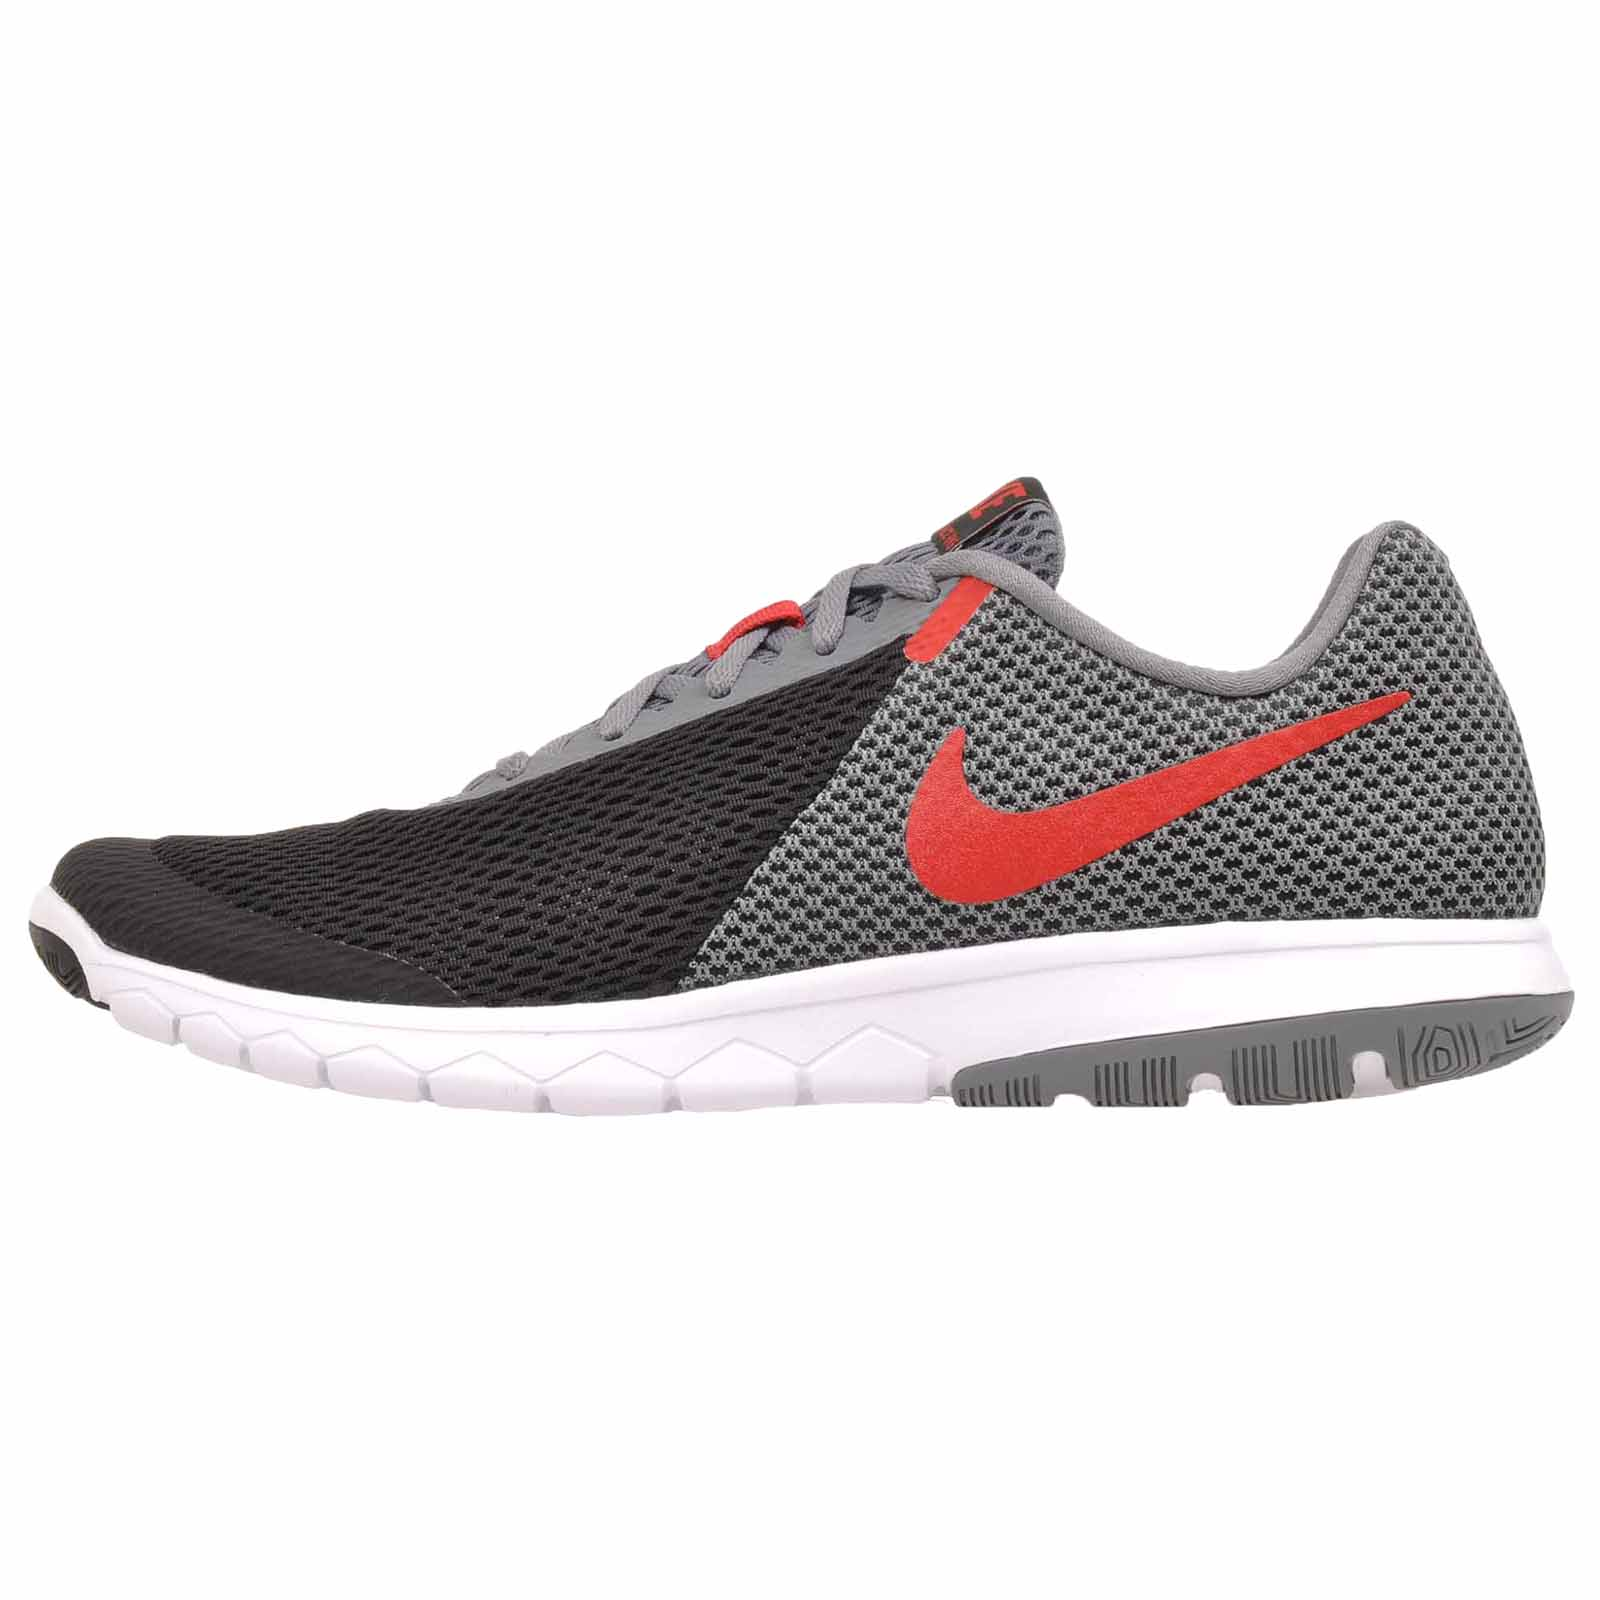 pretty nice 03cf6 09a64 Details about Nike Flex Experience RN 6 Running Mens Shoes NWOB Black Grey  881802-011